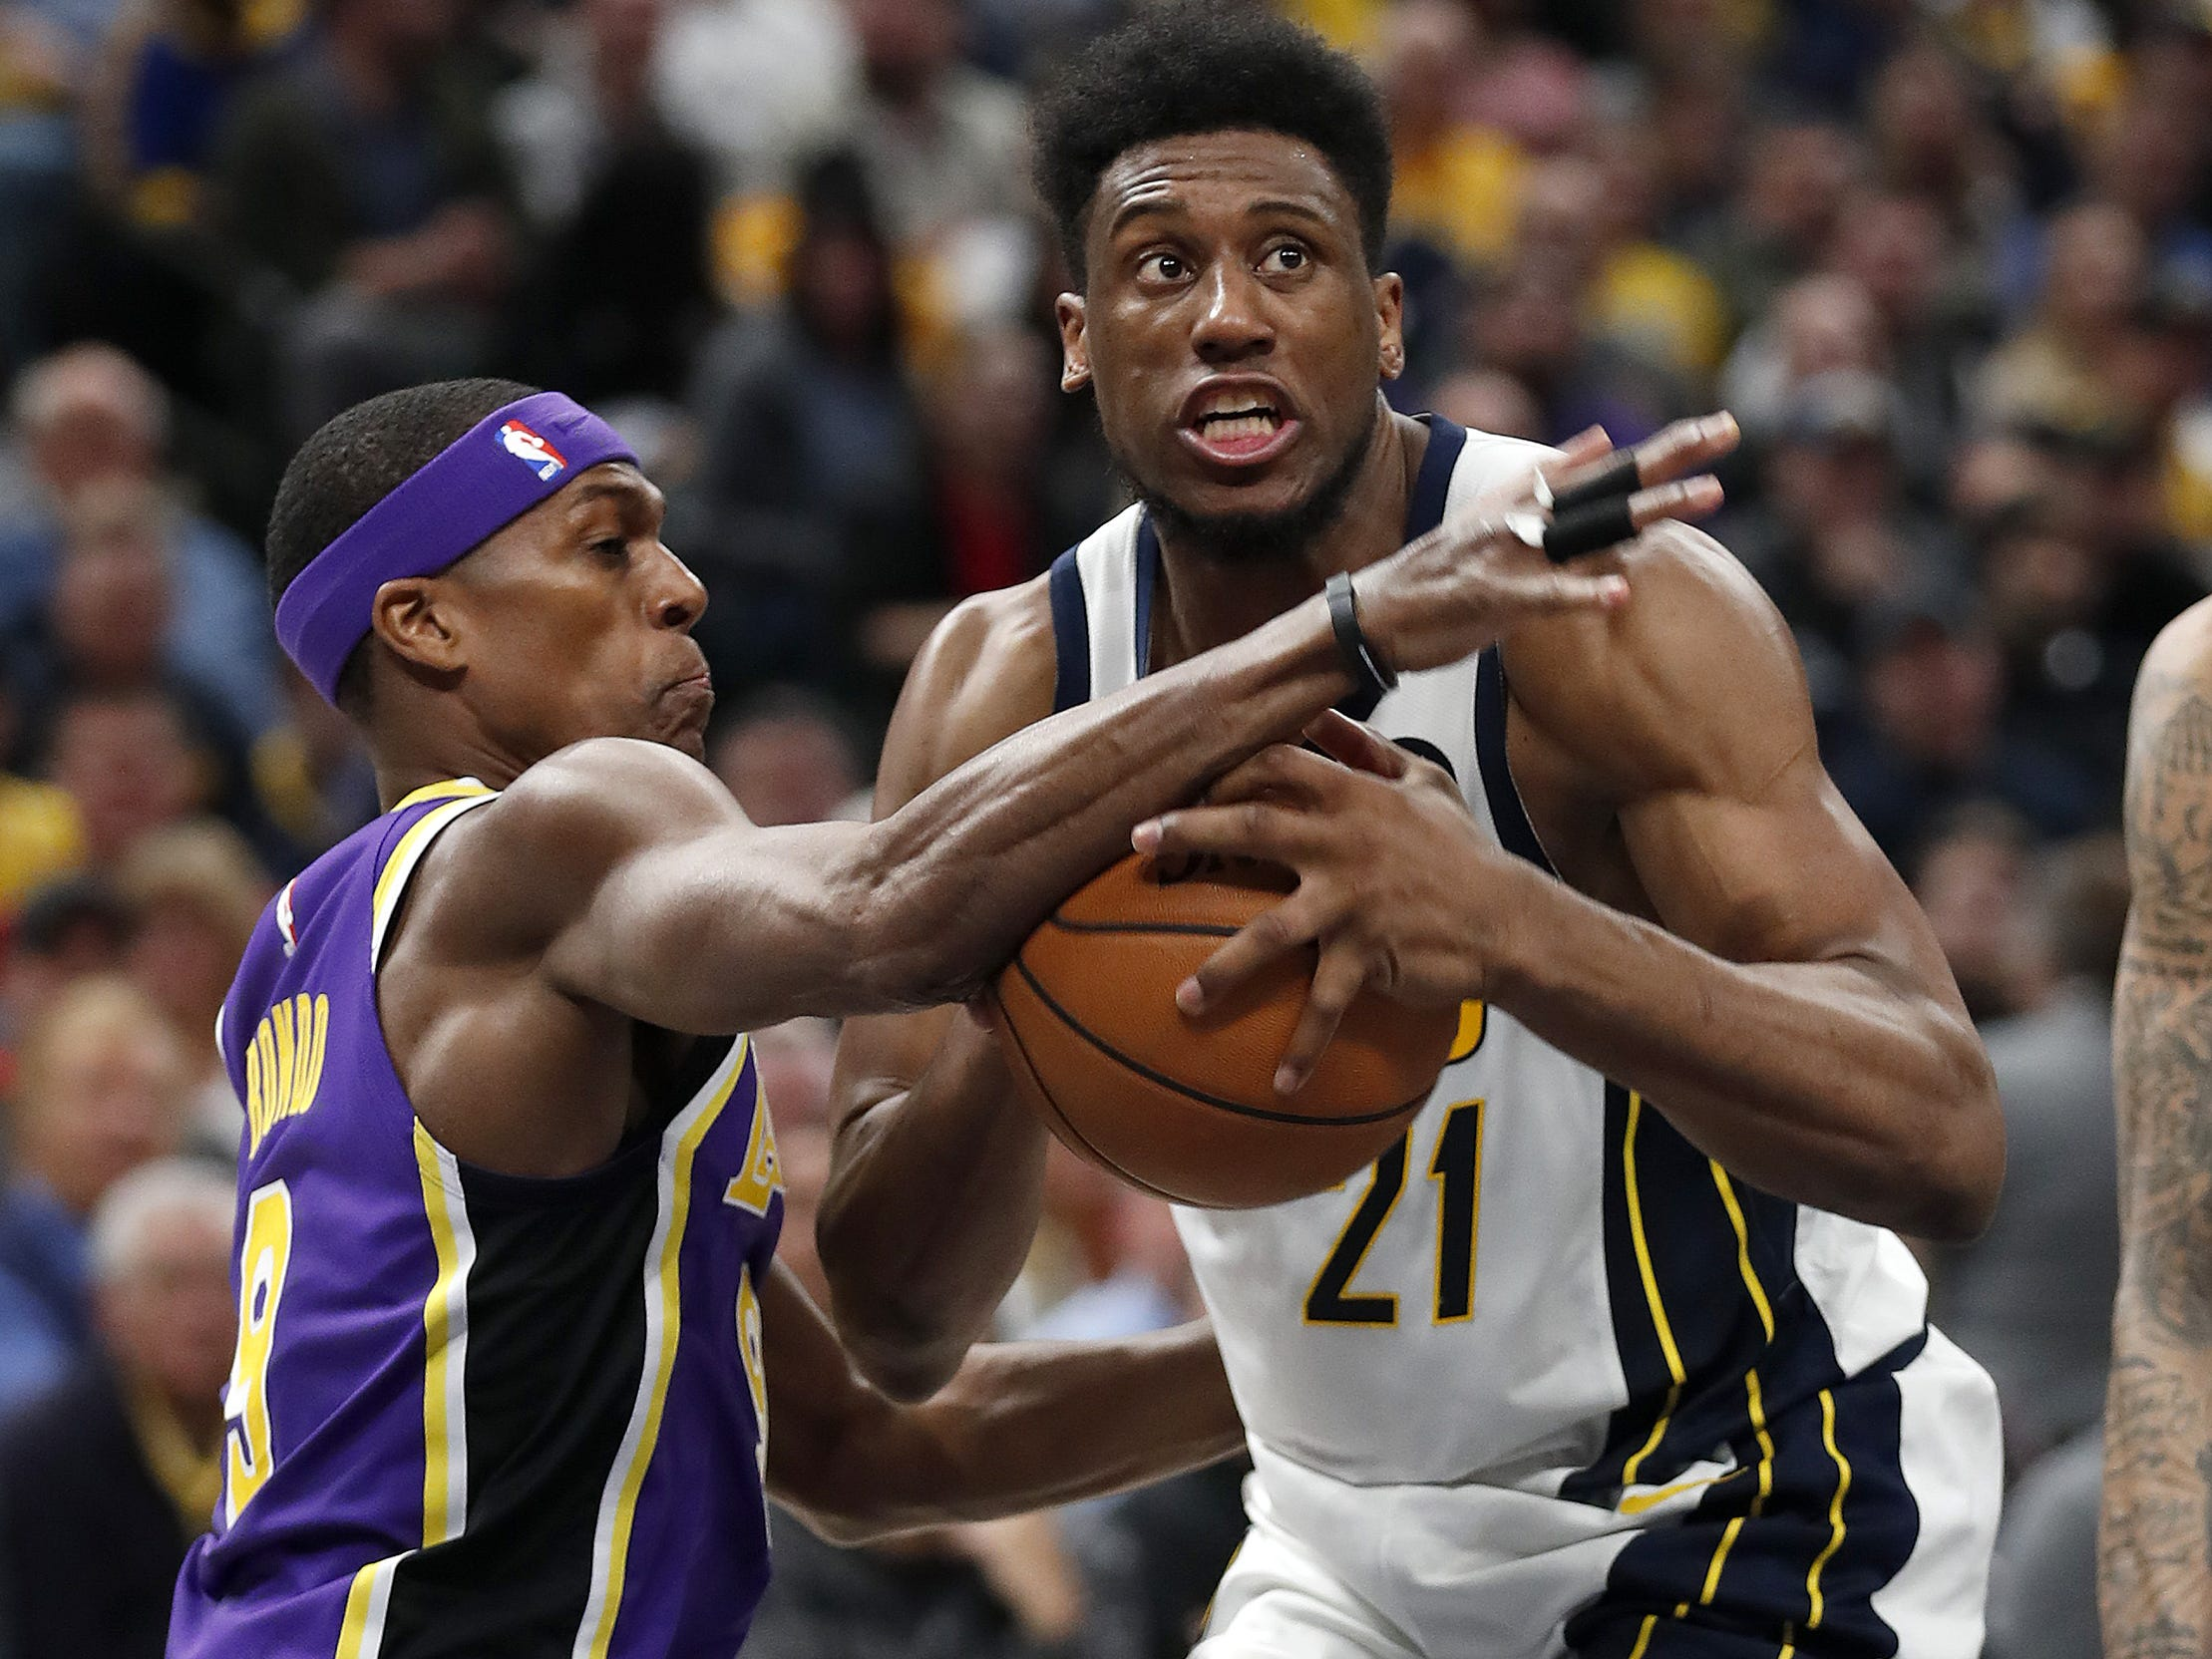 Indiana Pacers forward Thaddeus Young (21) drives on Los Angeles Lakers guard Rajon Rondo (9) in the first half of their game at Bankers Life Fieldouse on Tuesday, Feb. 5, 2019.